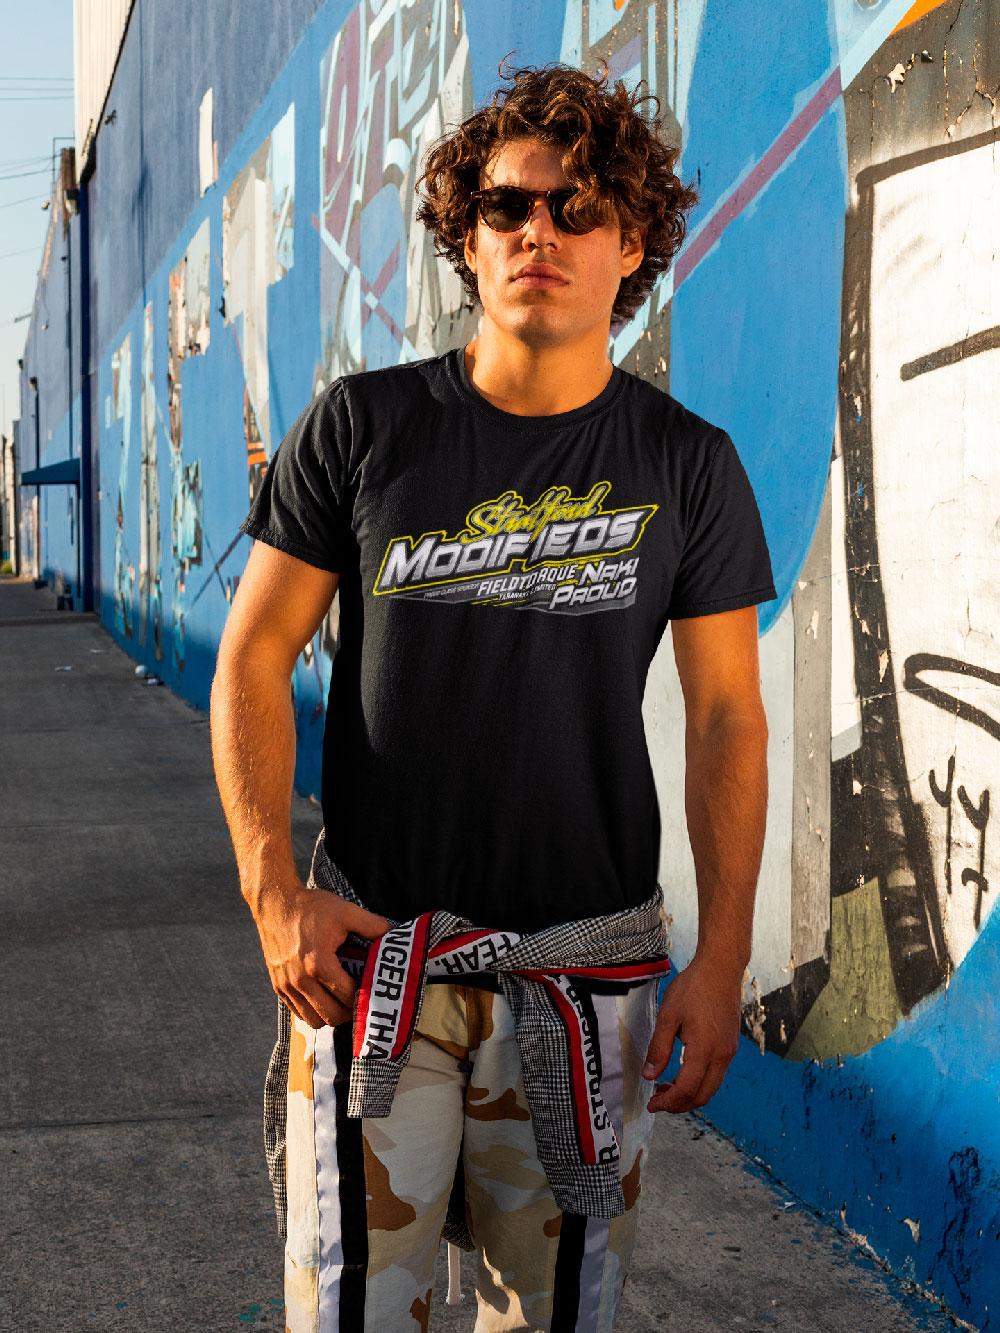 Stratford Modifieds Tee